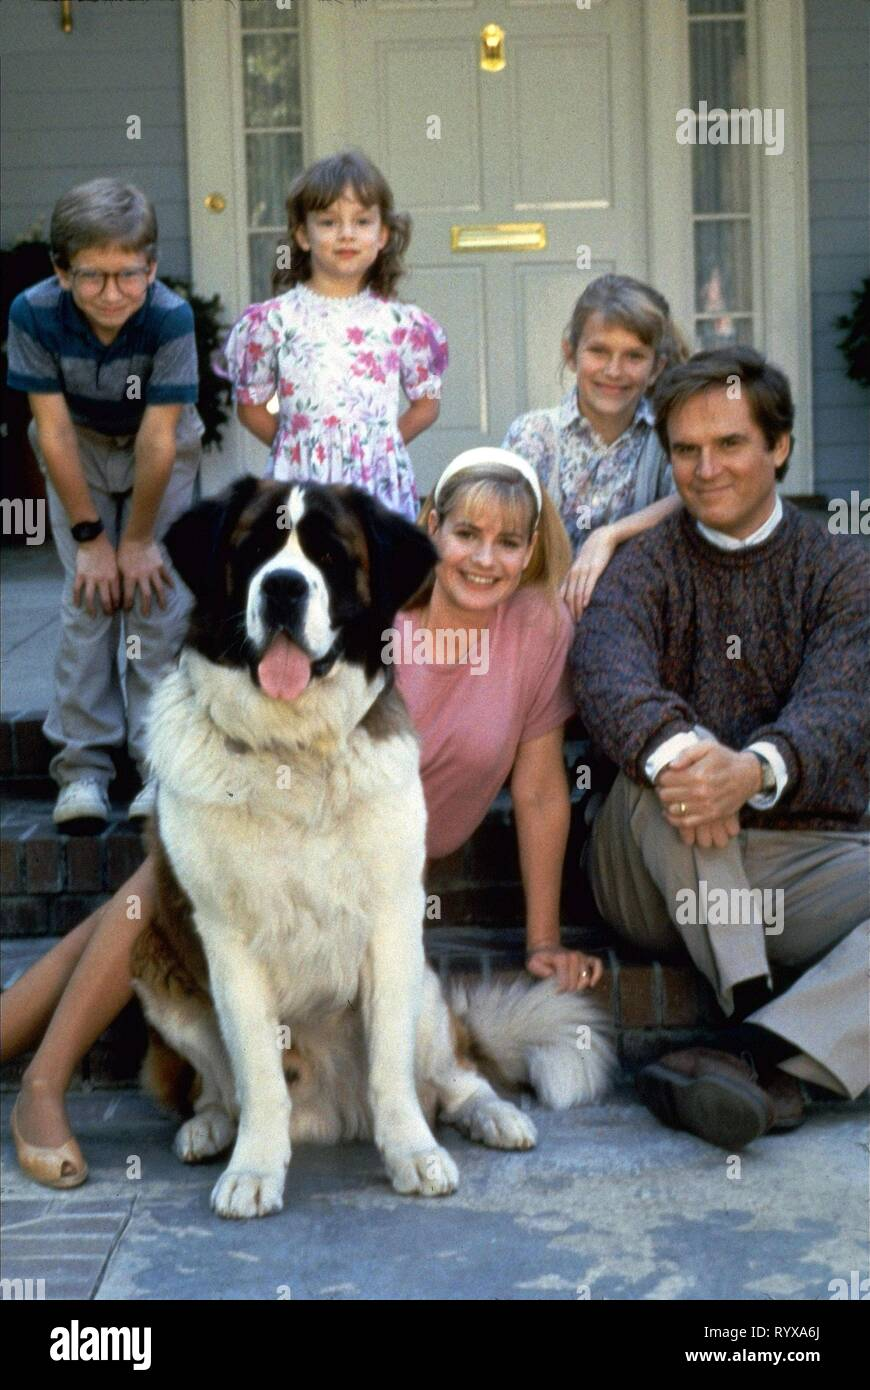 SARAH ROSE KARR, CHRISTOPHER CASTILE, NICHOLLE TOM, BONNIE HUNT,CHARLES GRODIN, BEETHOVEN, 1992 - Stock Image